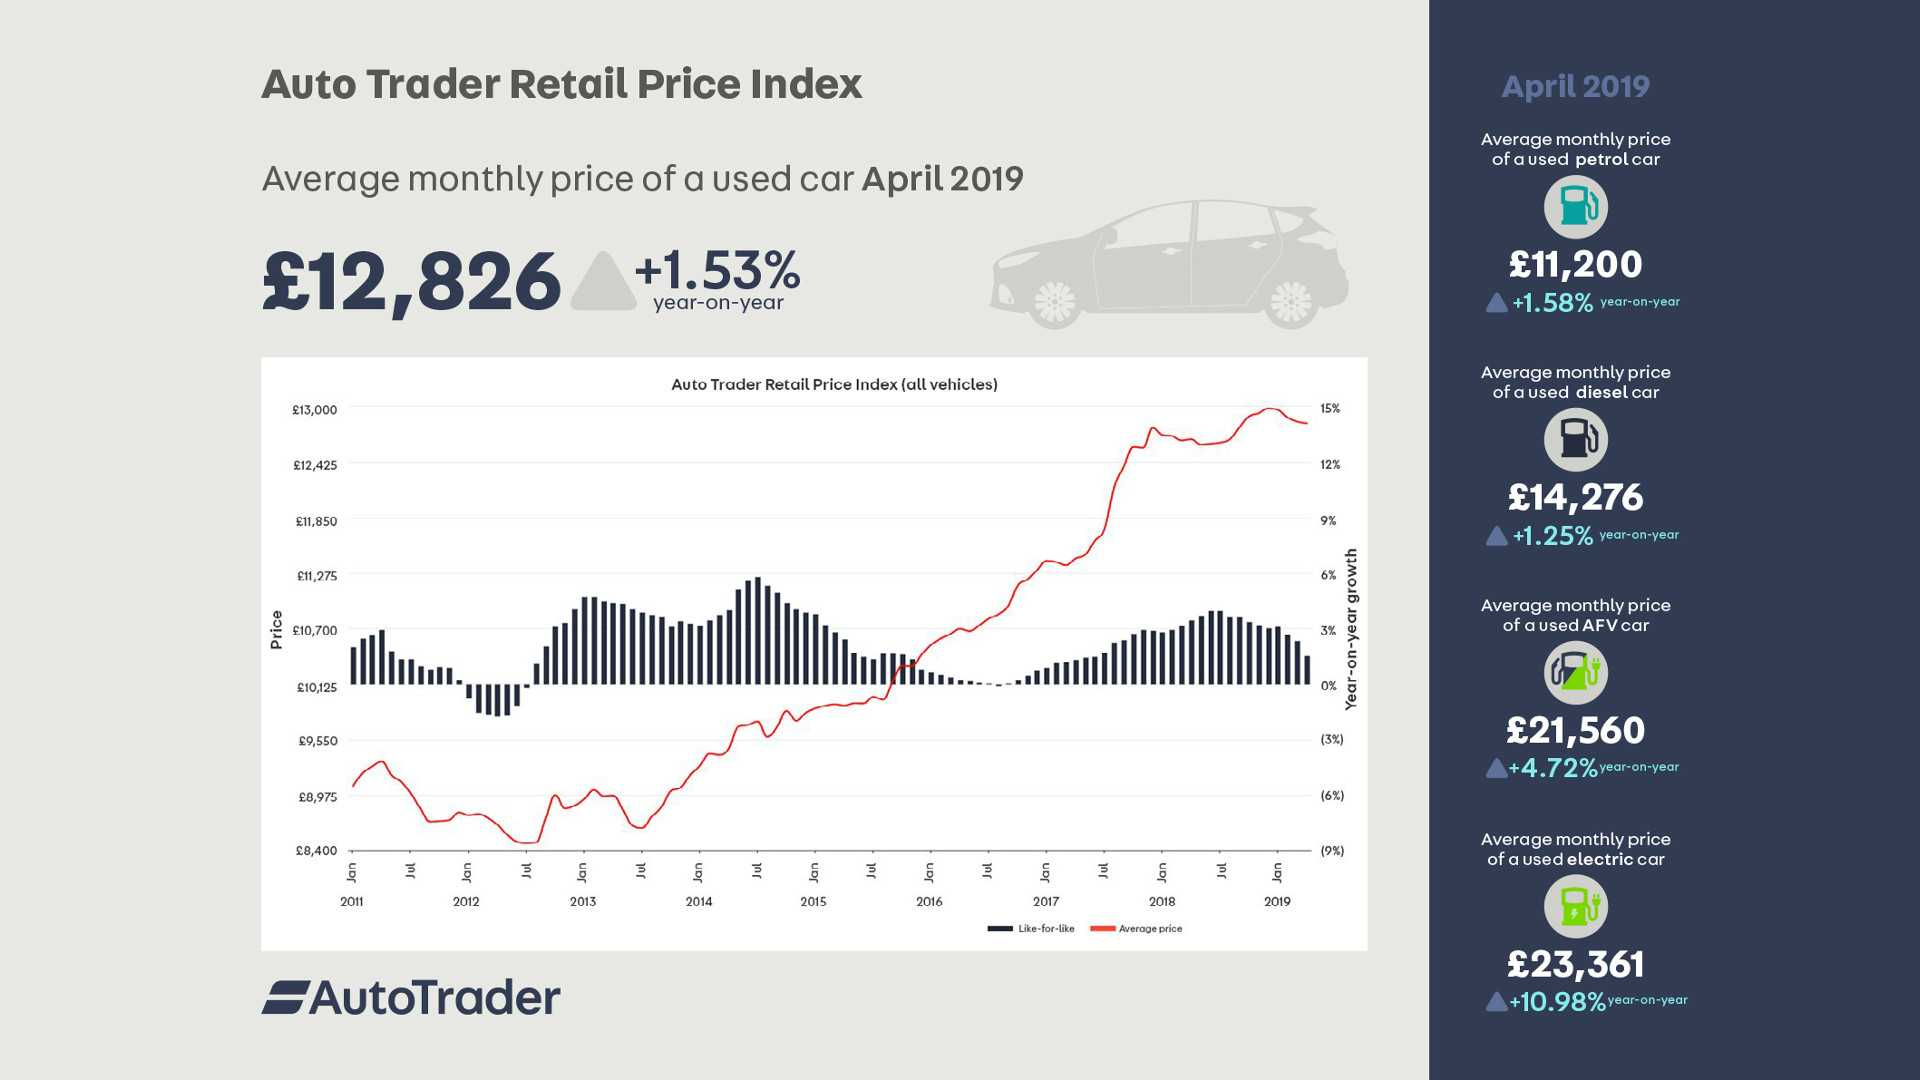 auto-trader-retail-price-index-april-2019.jpg